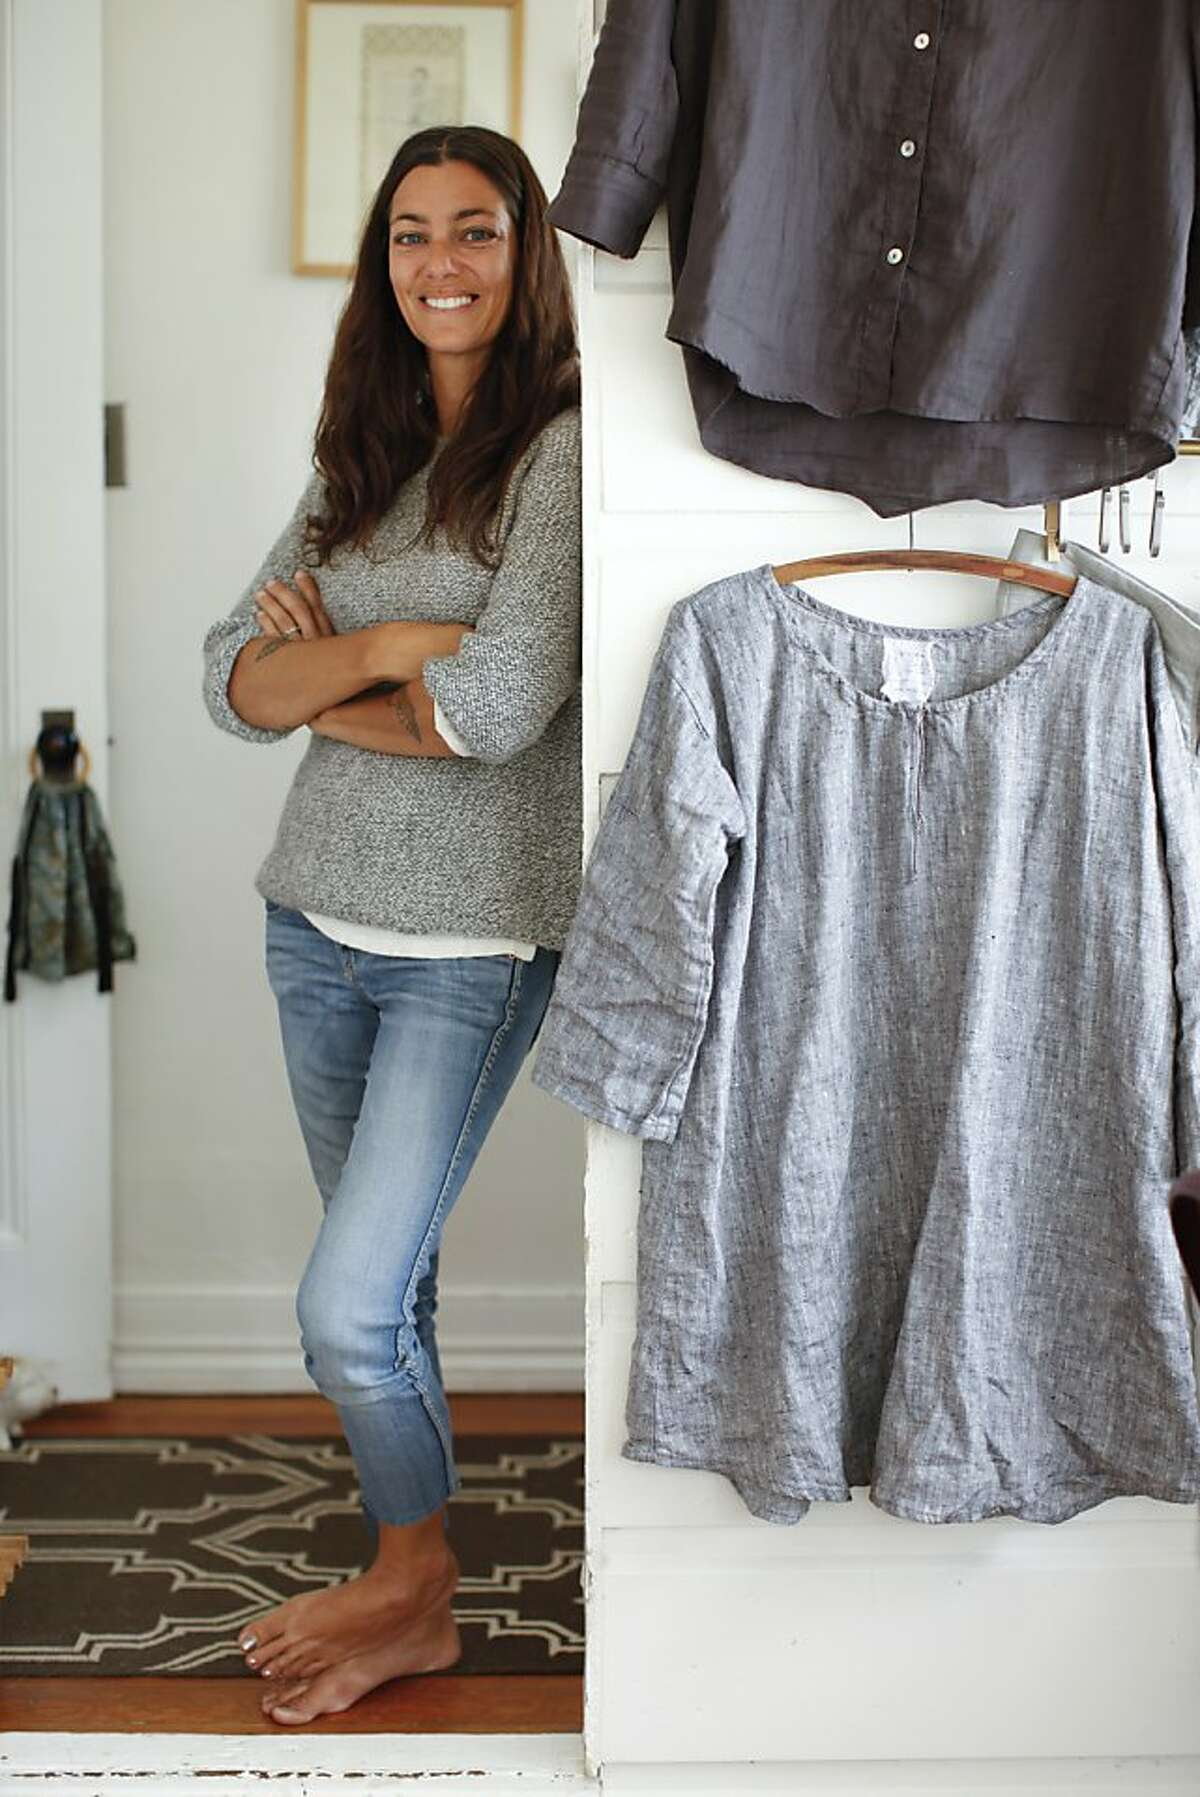 Designer Jess Brown, seen on Thursday, Oct. 4, 2012 in her Petaluma, Calif., home studio, has introduced a women's clothing collection as part of her expanding lifestyle brand.